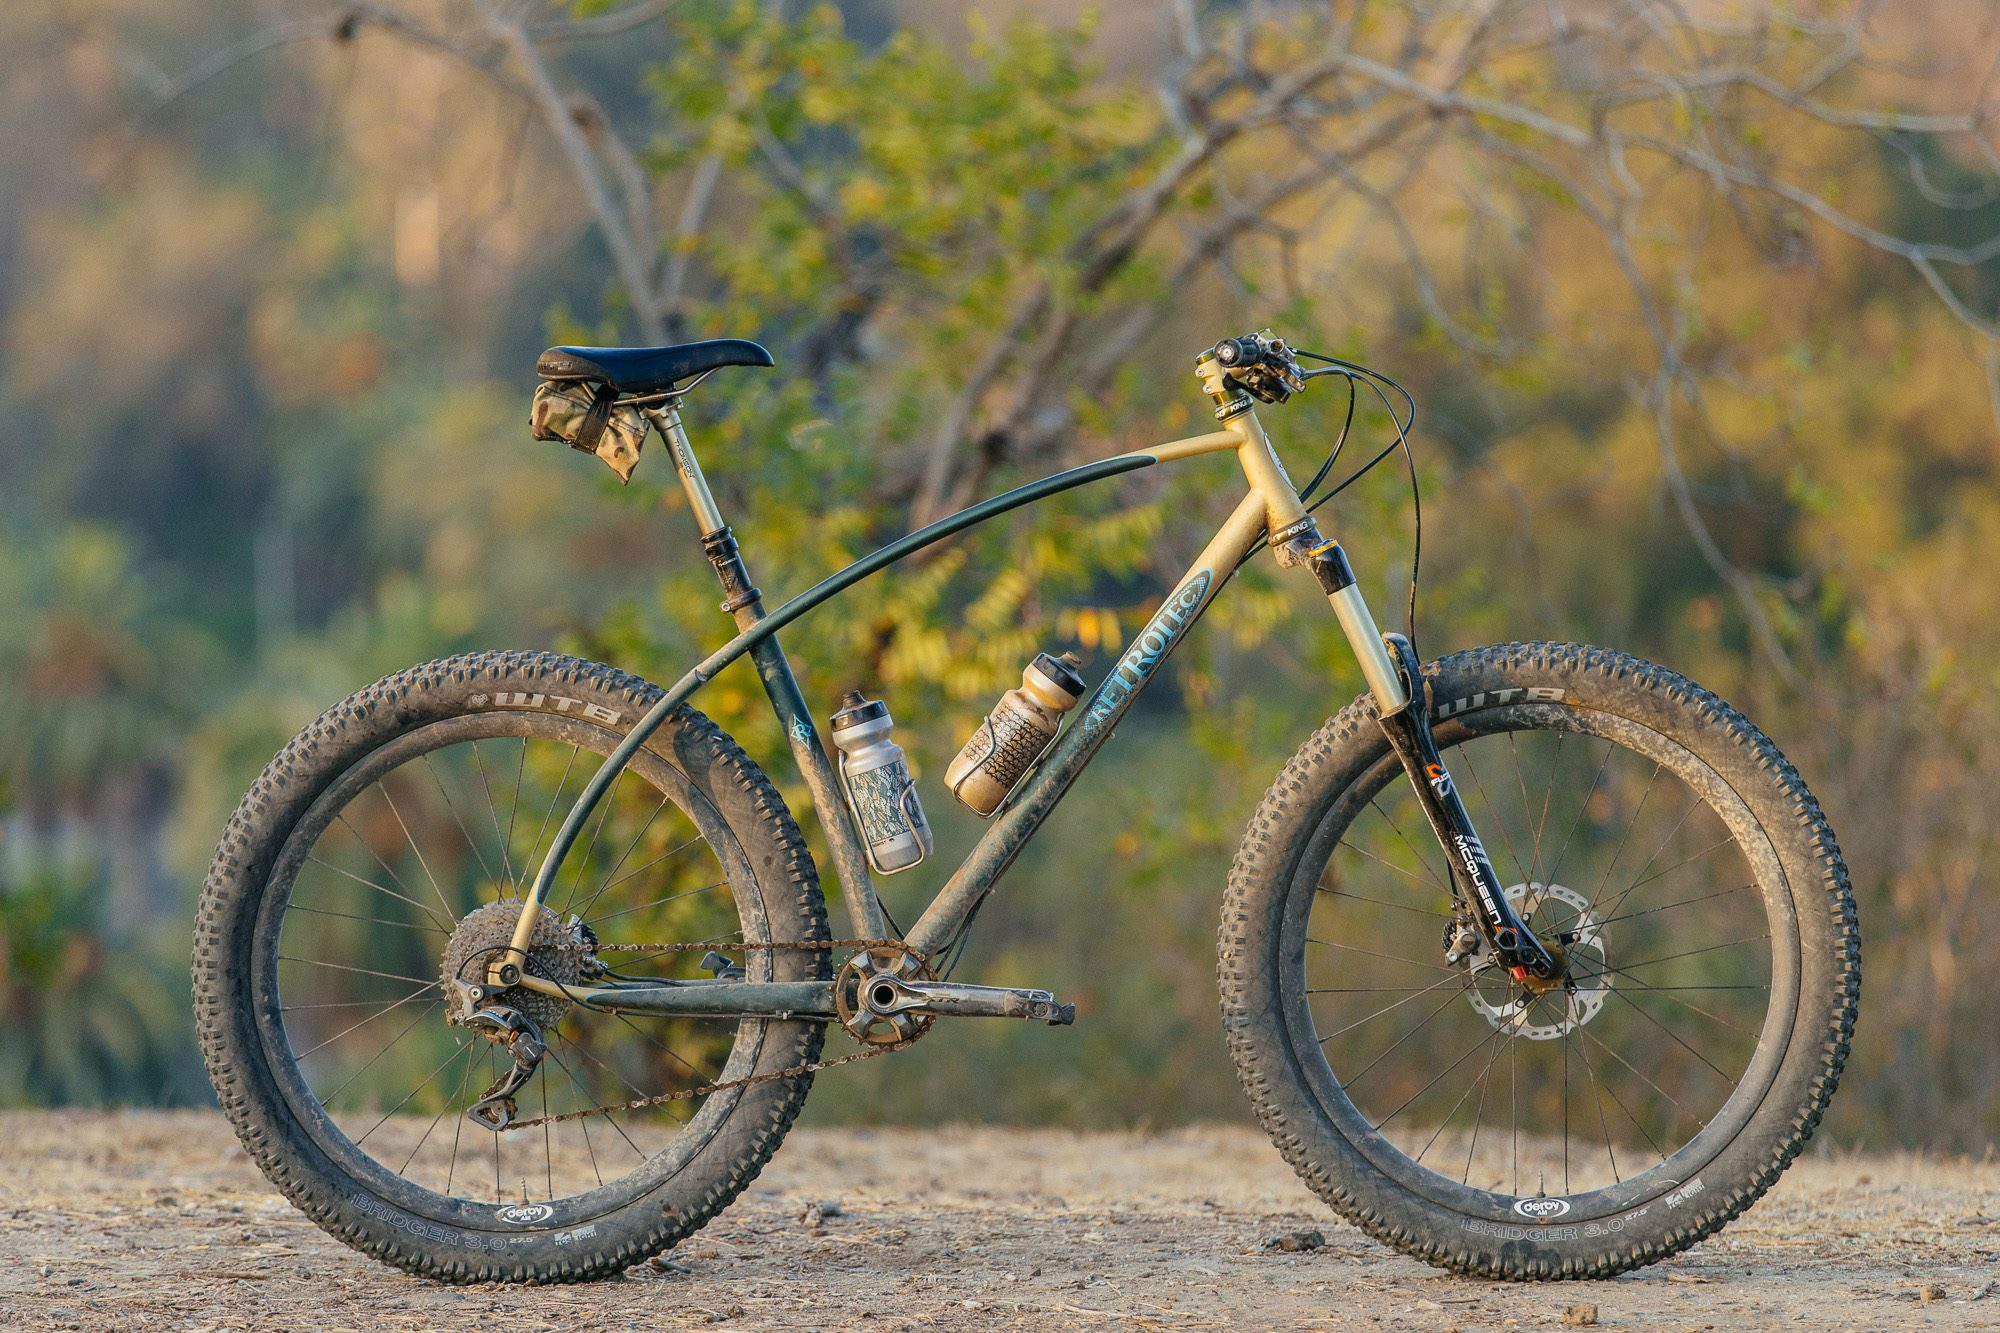 Six-Months-of-Stoke-on-the-Retrotec-27.5-Funduro-59